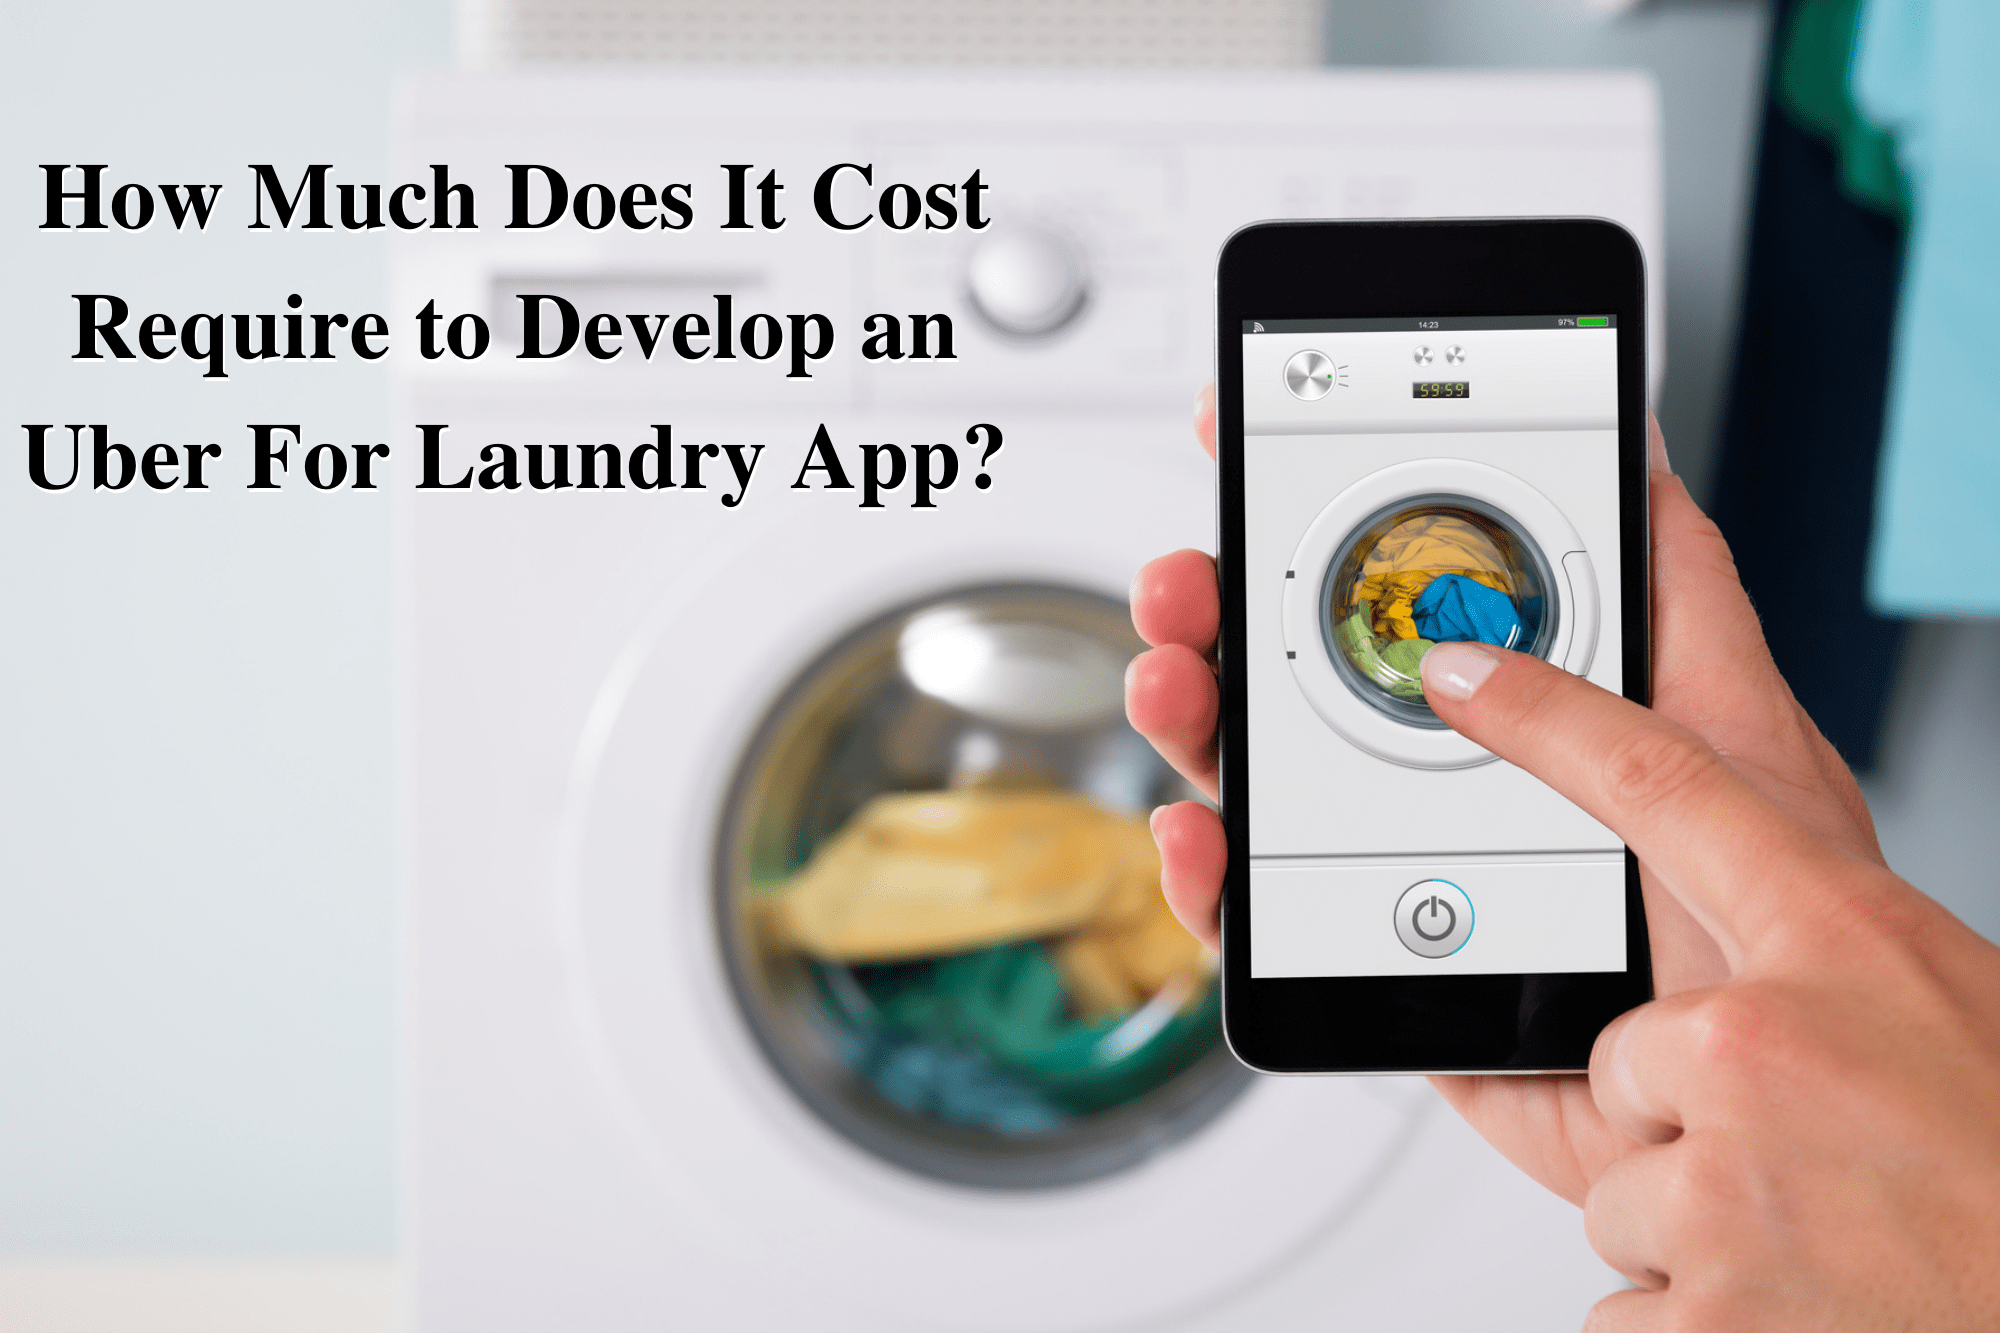 How Much Does It Cost Require to Develop an Uber For Laundry App?